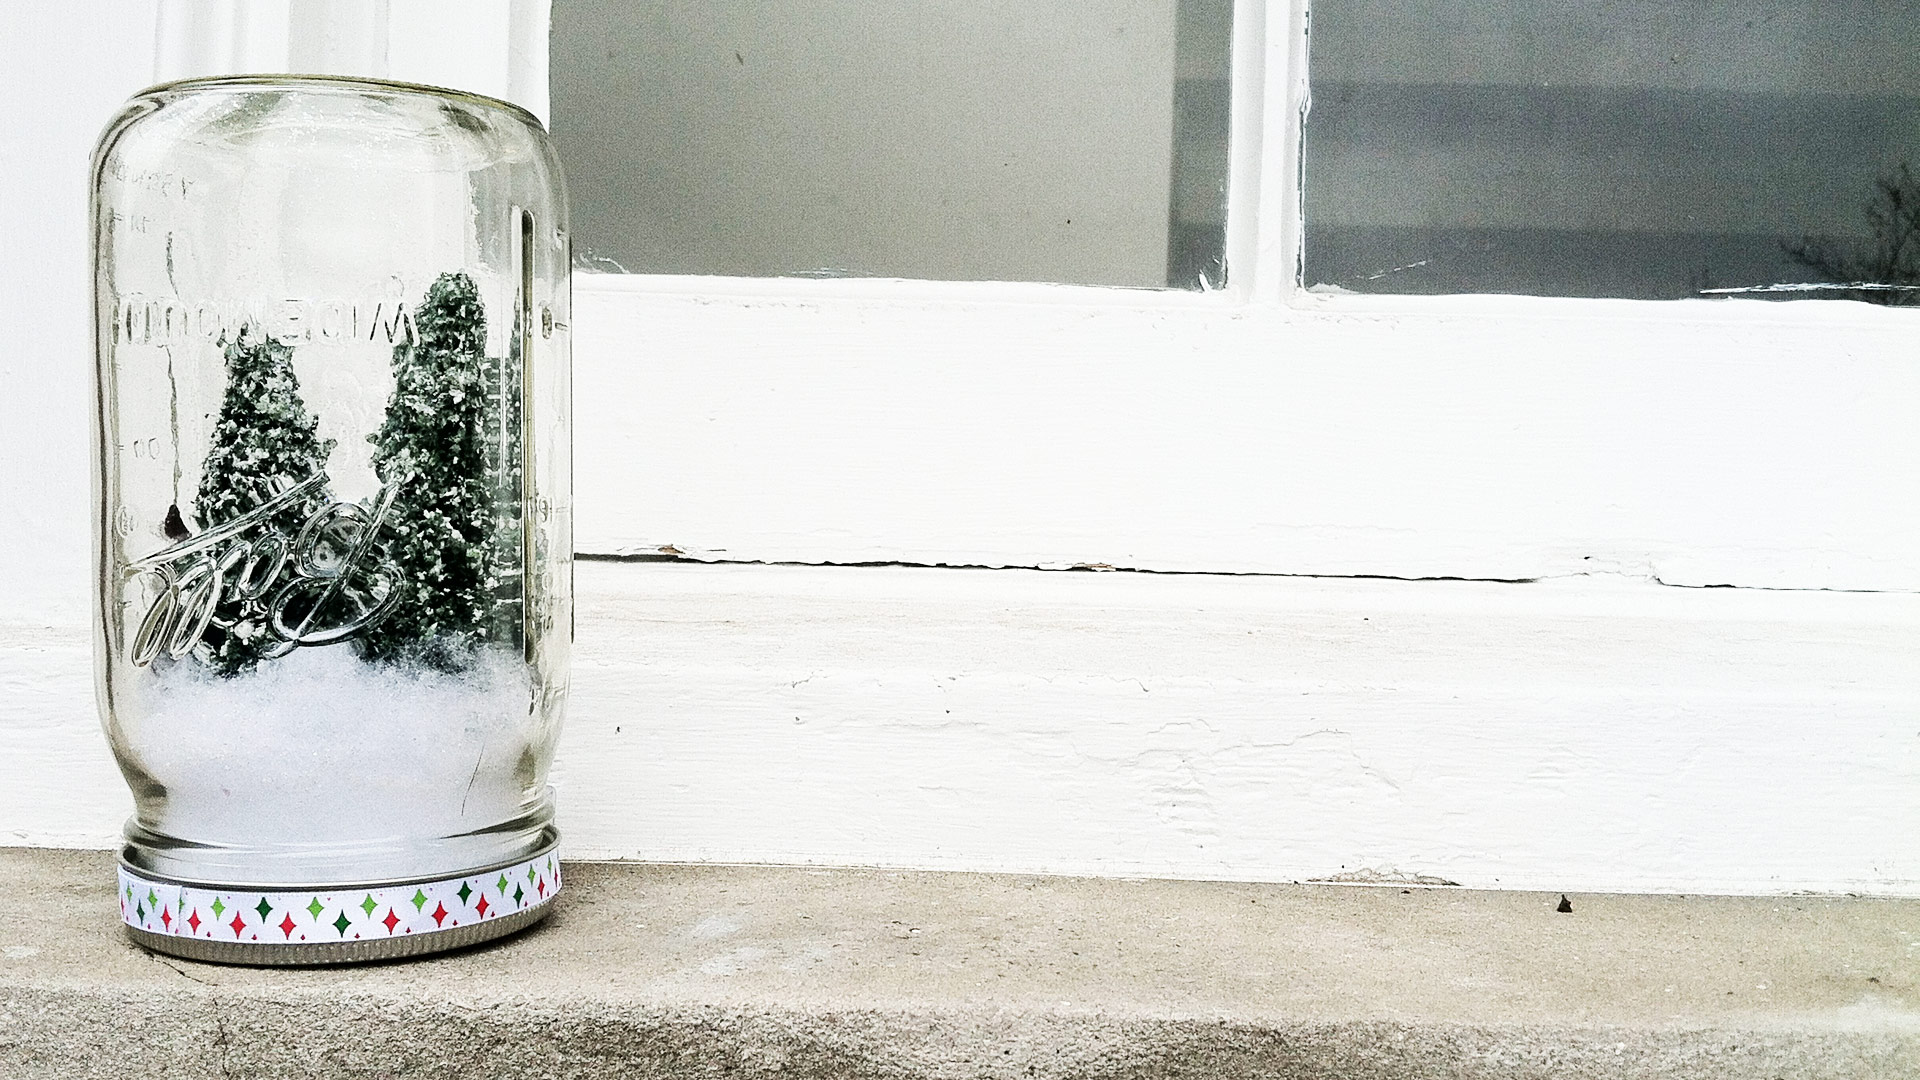 Creating a Miniature Scene in a Glass Jar